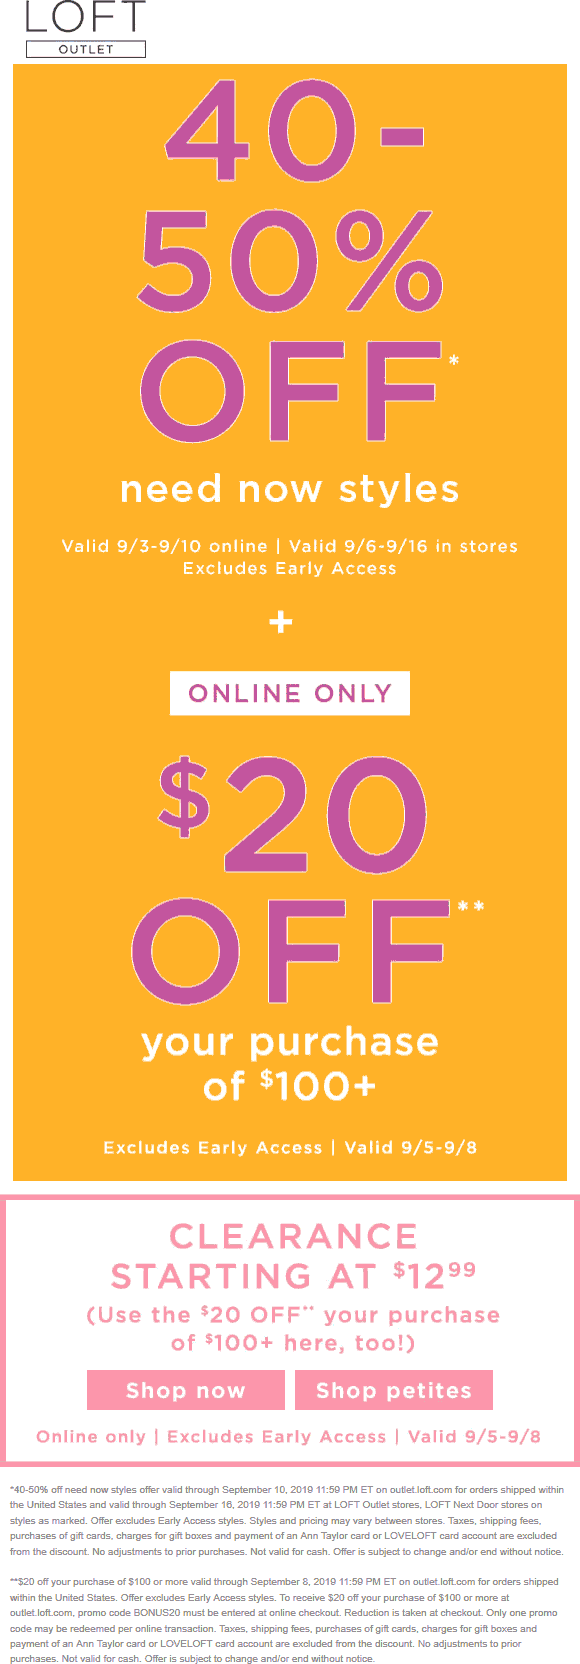 LOFT Outlet Coupon January 2020 40-50% off need now styles at LOFT Outlet, ditto online